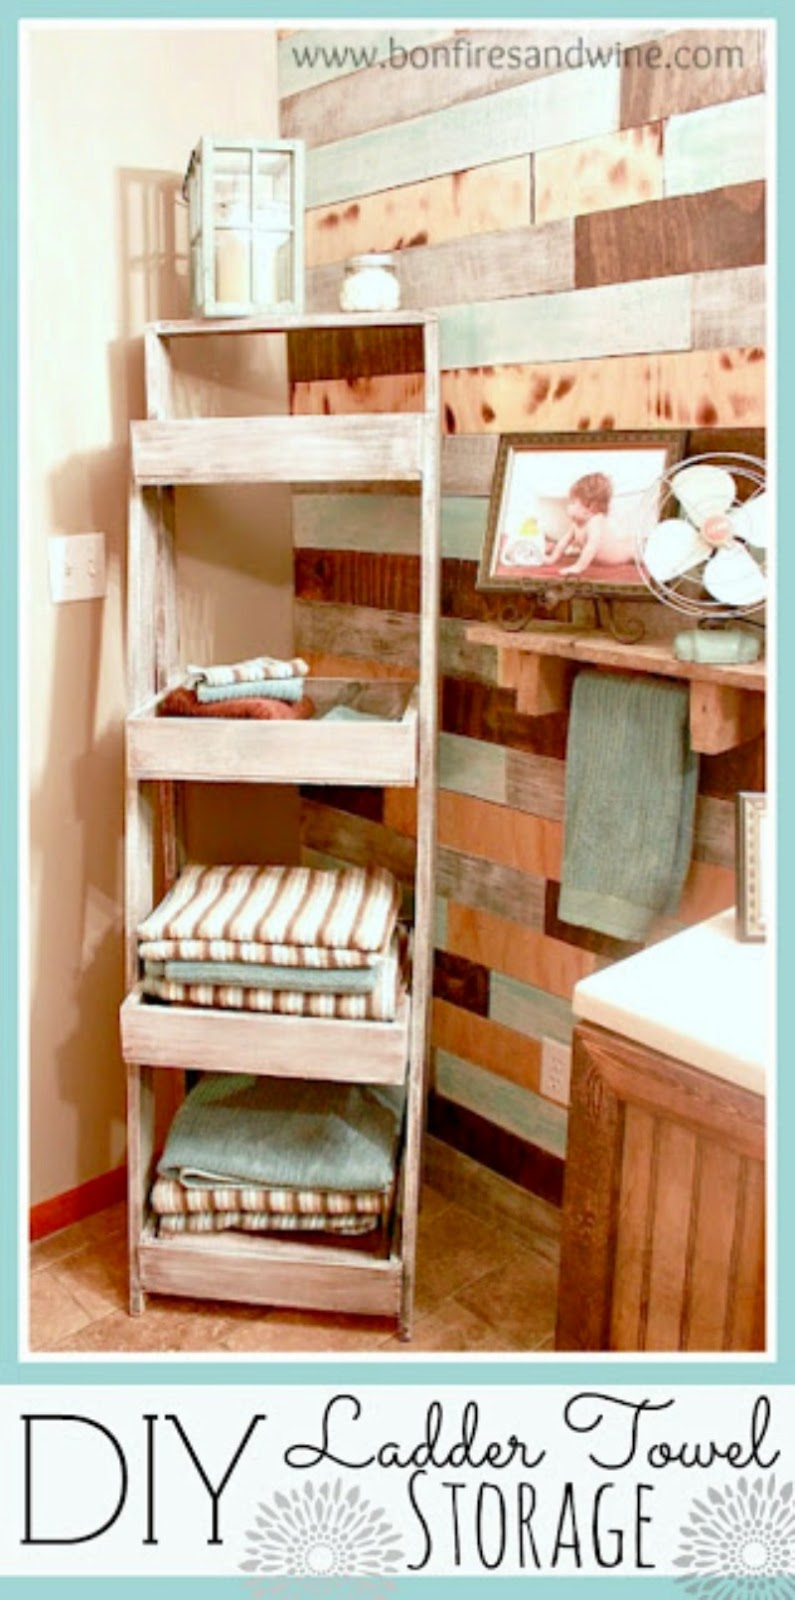 Bonfires and wine diy ladder towel storage for Bathroom towel storage